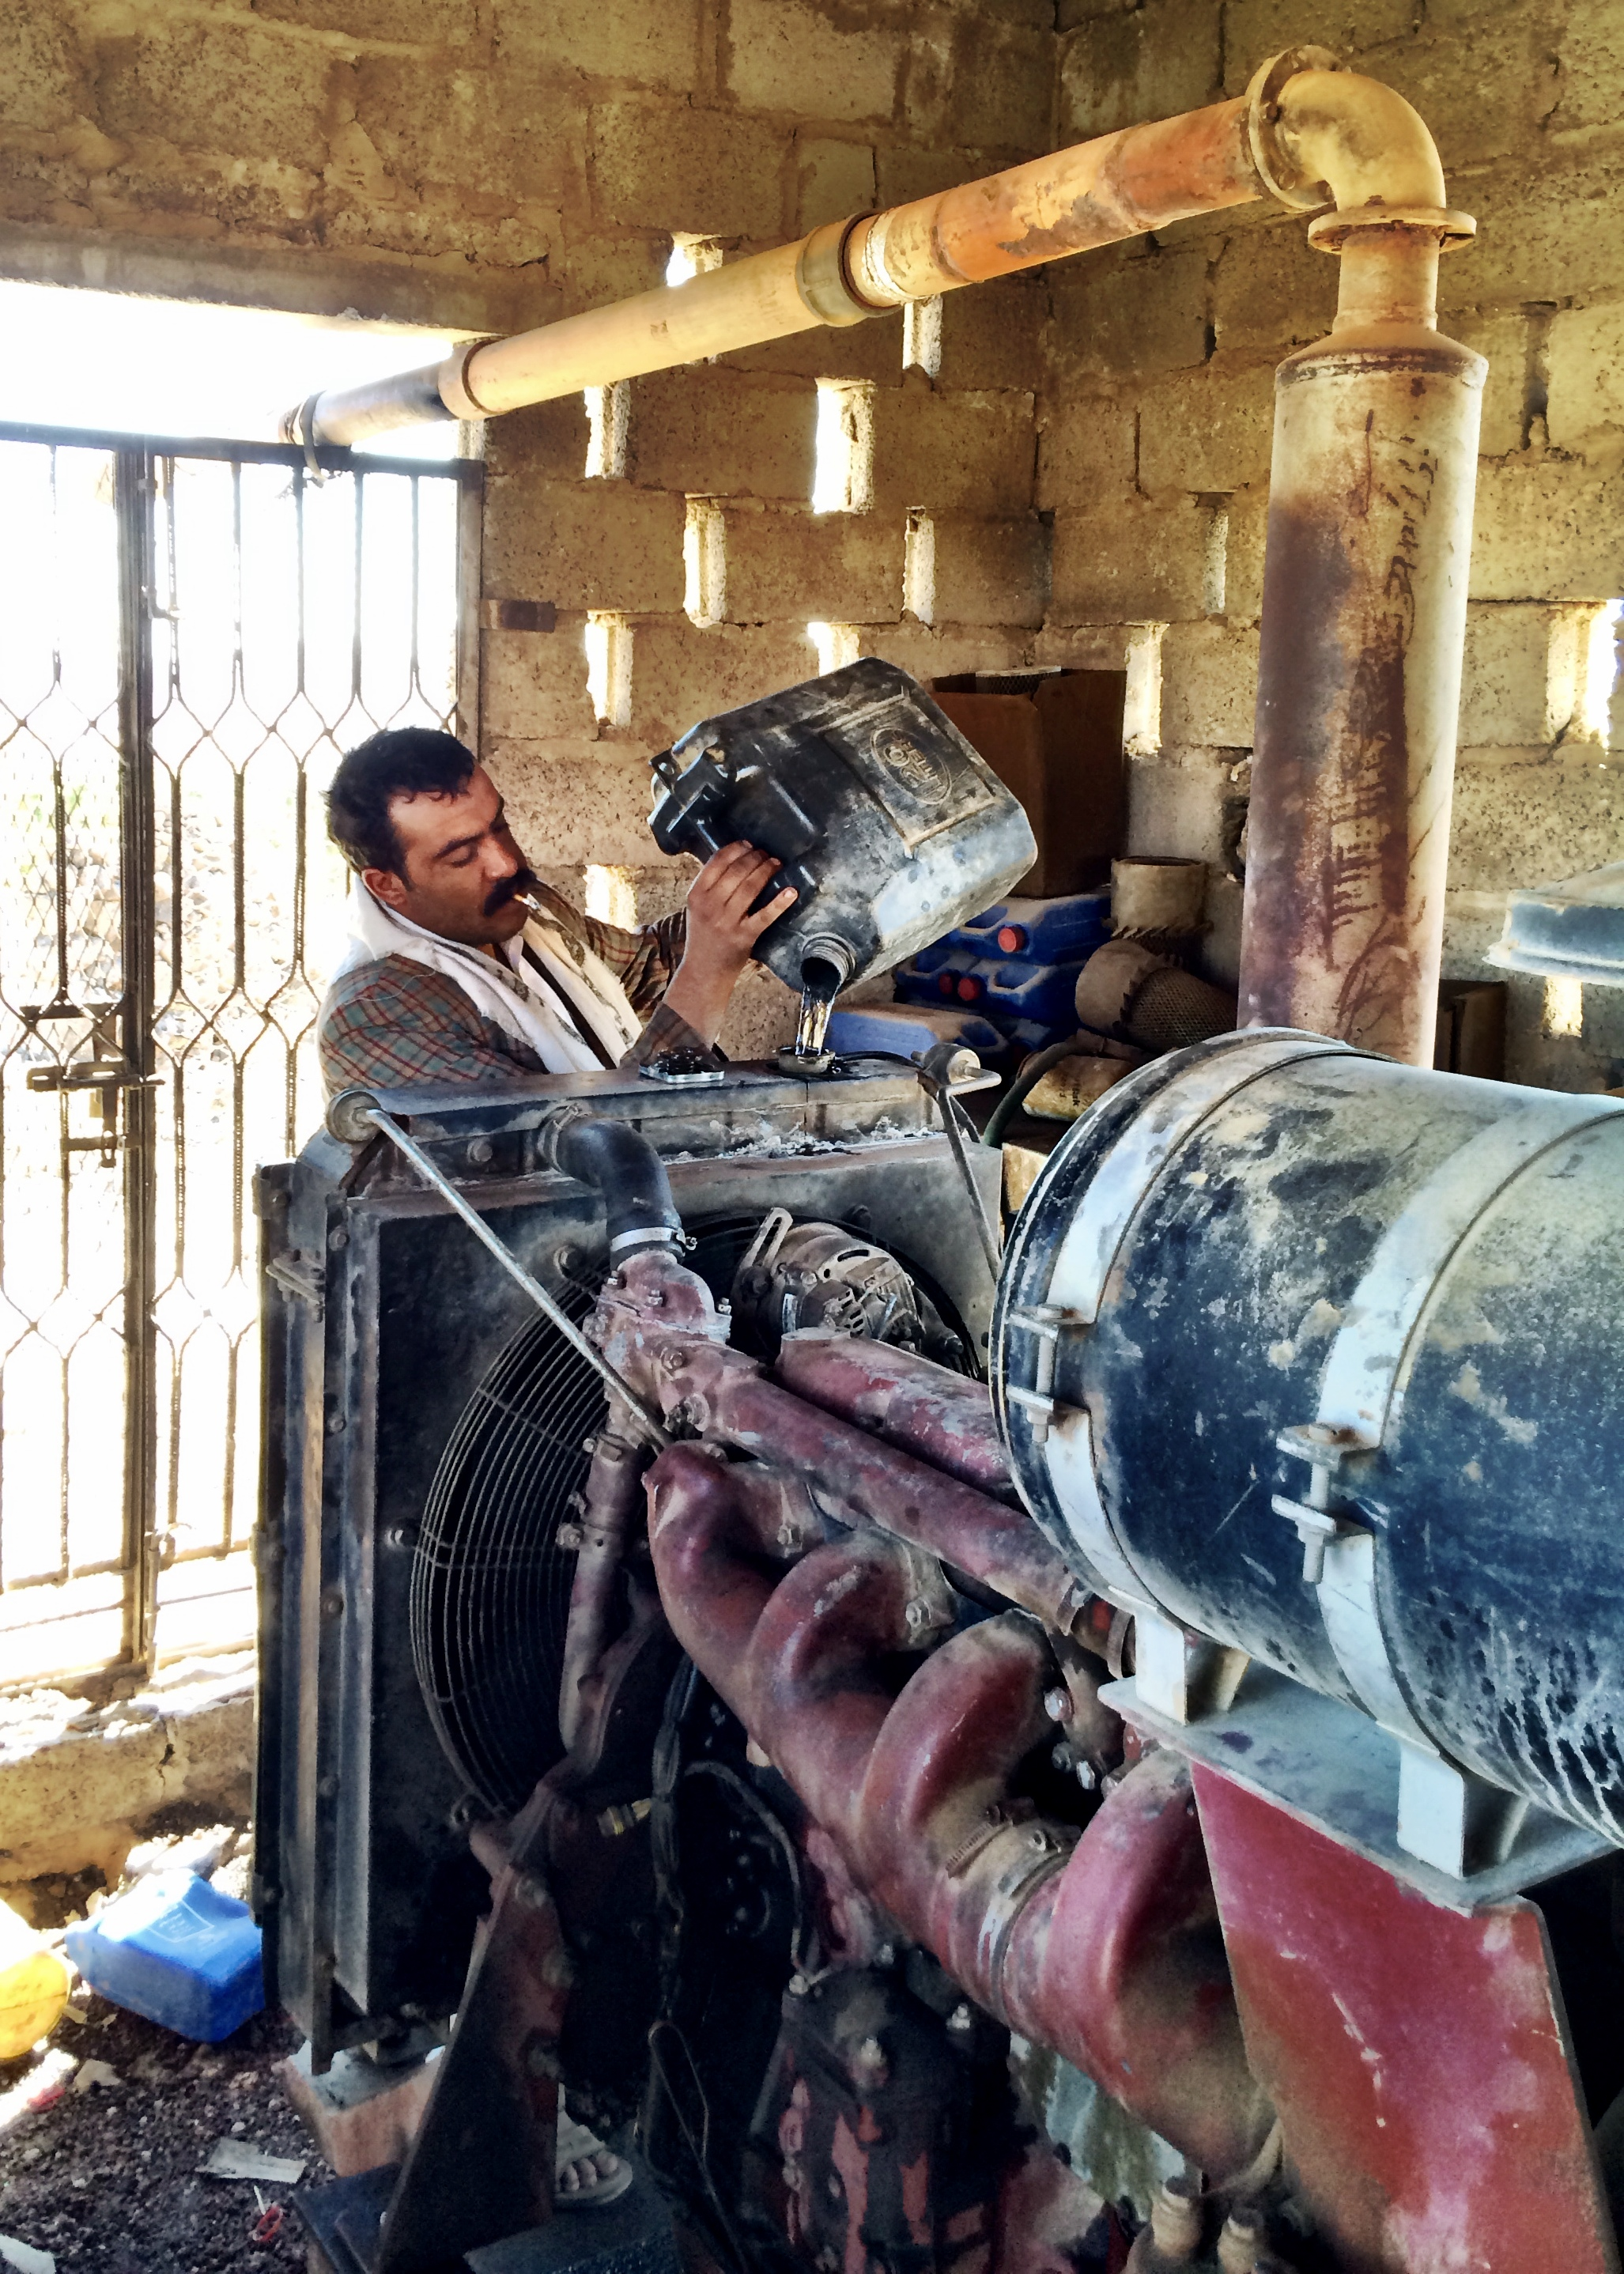 Subsidized diesel powers the well's water pumps. Photograph by Lucy Kafanov.